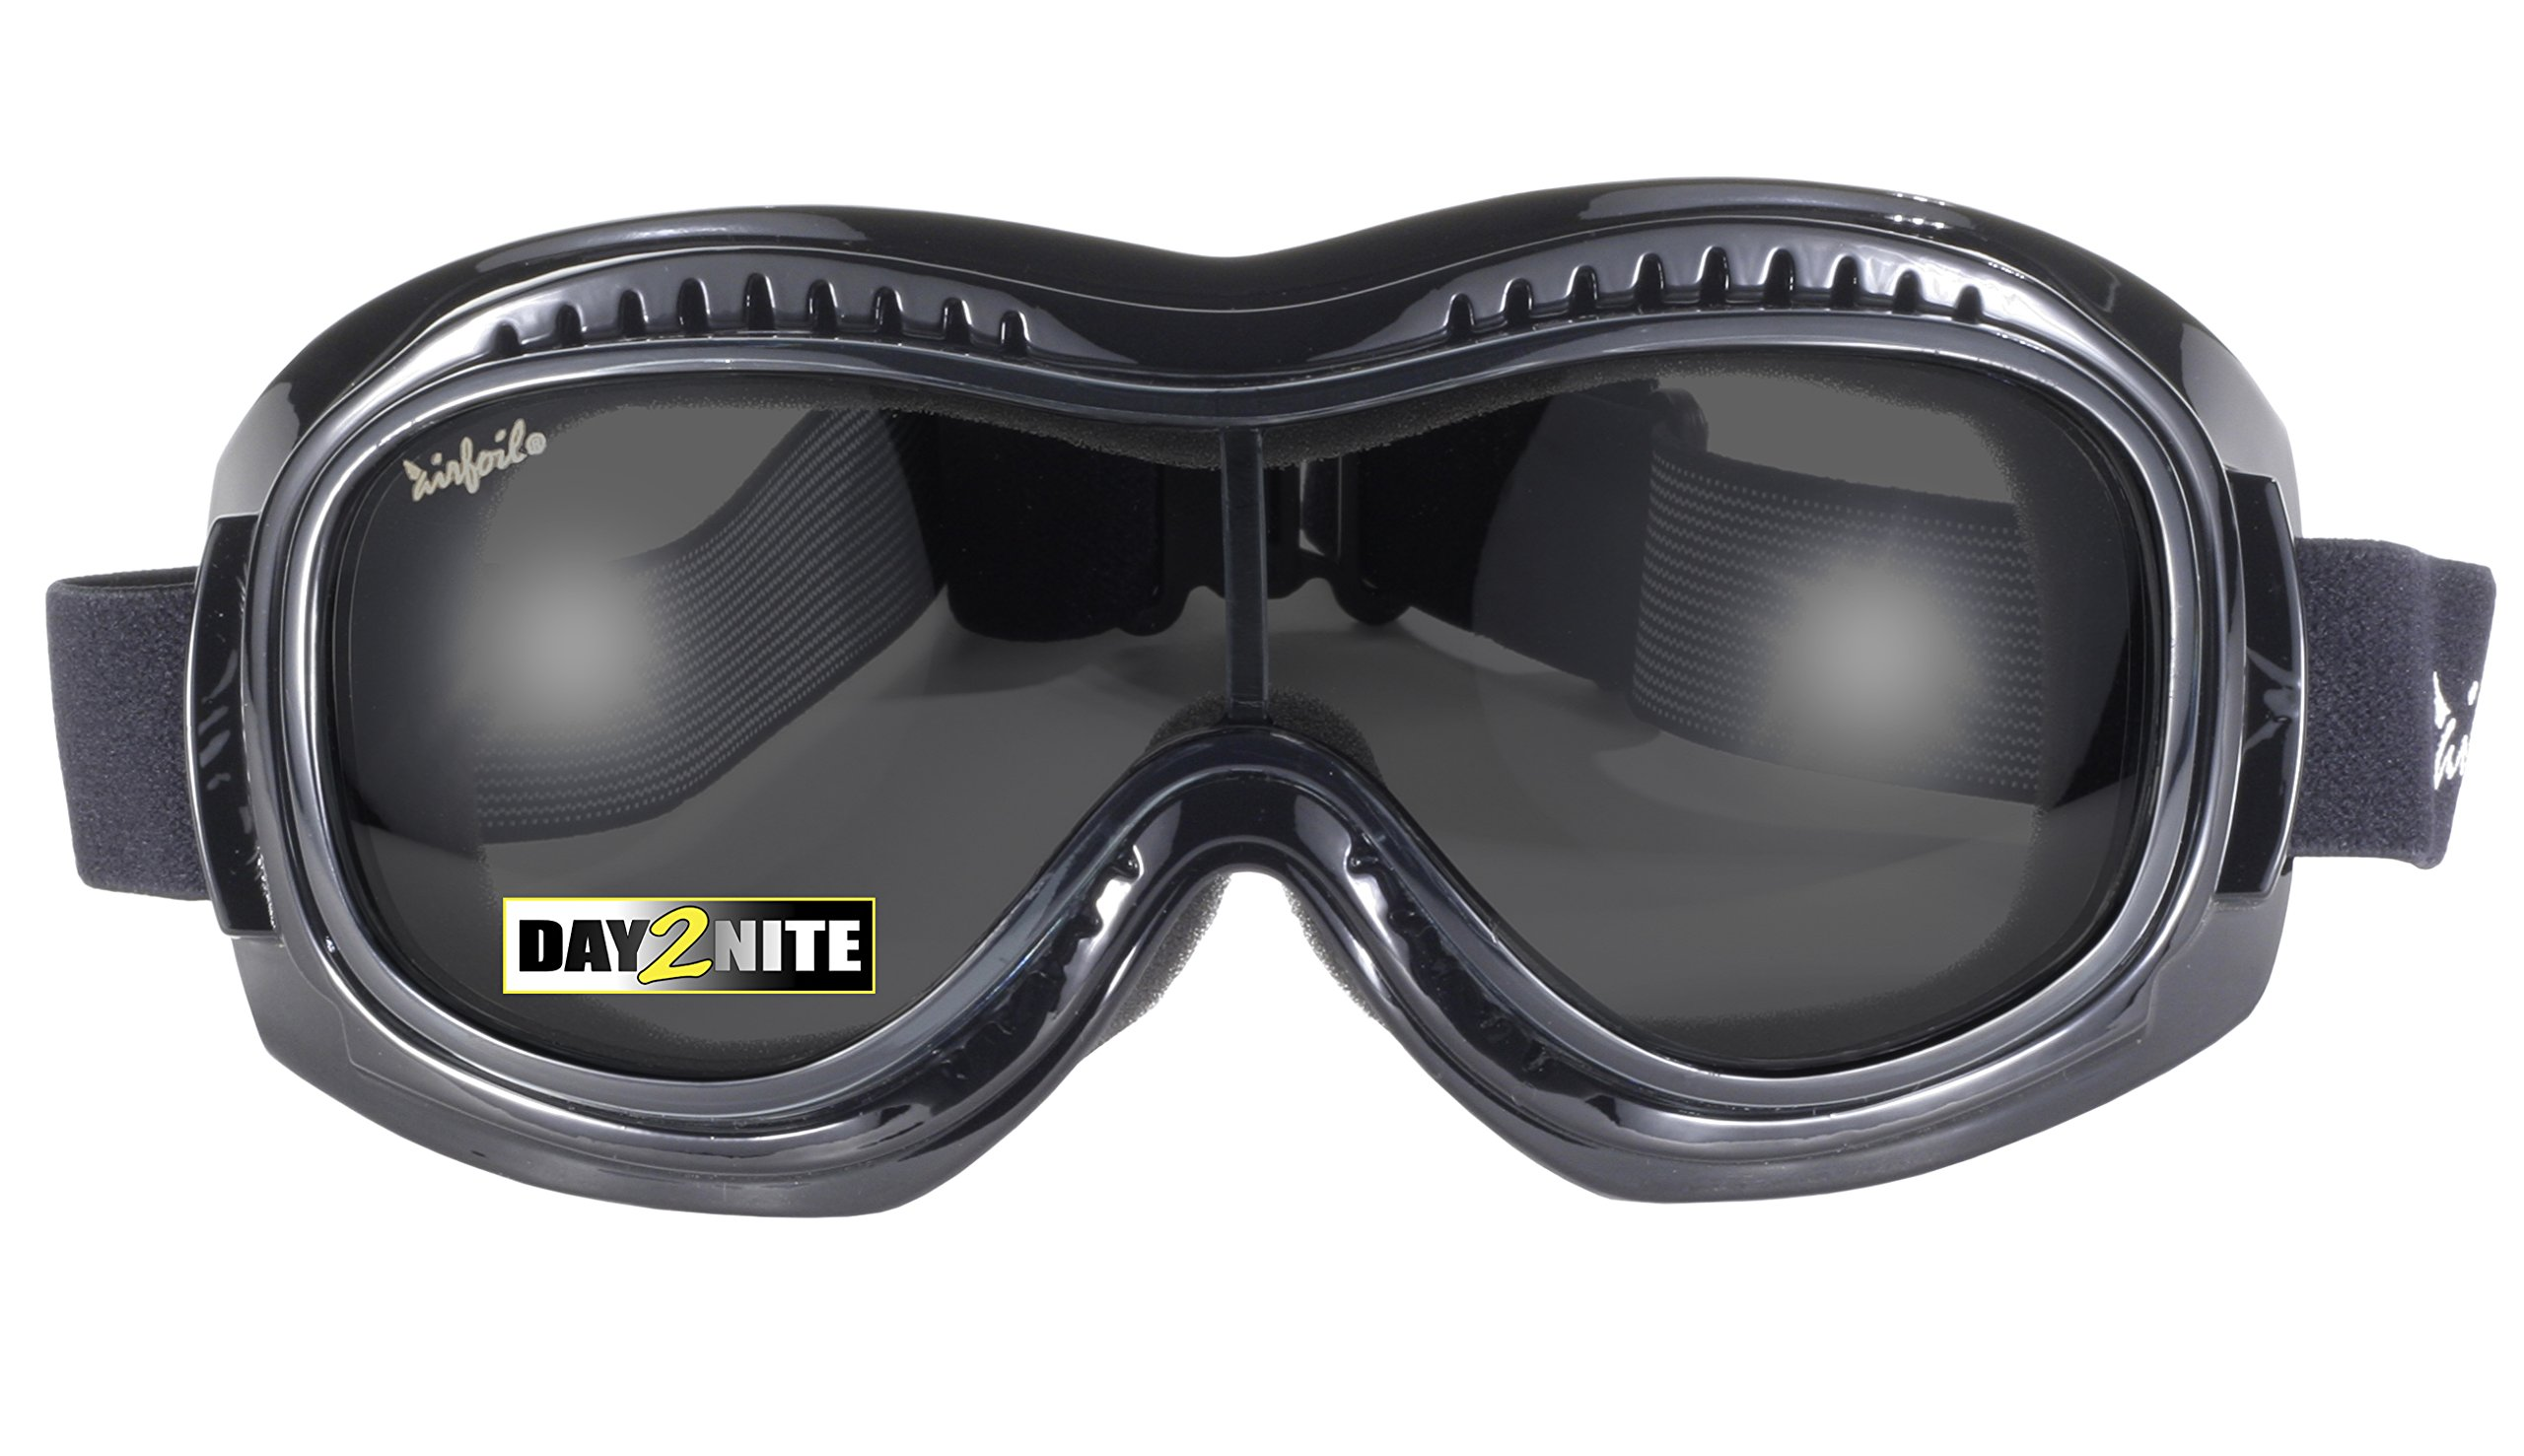 fa25cb2b028 Pacific Coast Airfoil Padded  Fit Over Glasses  Riding Goggles (Black Frame  Grey